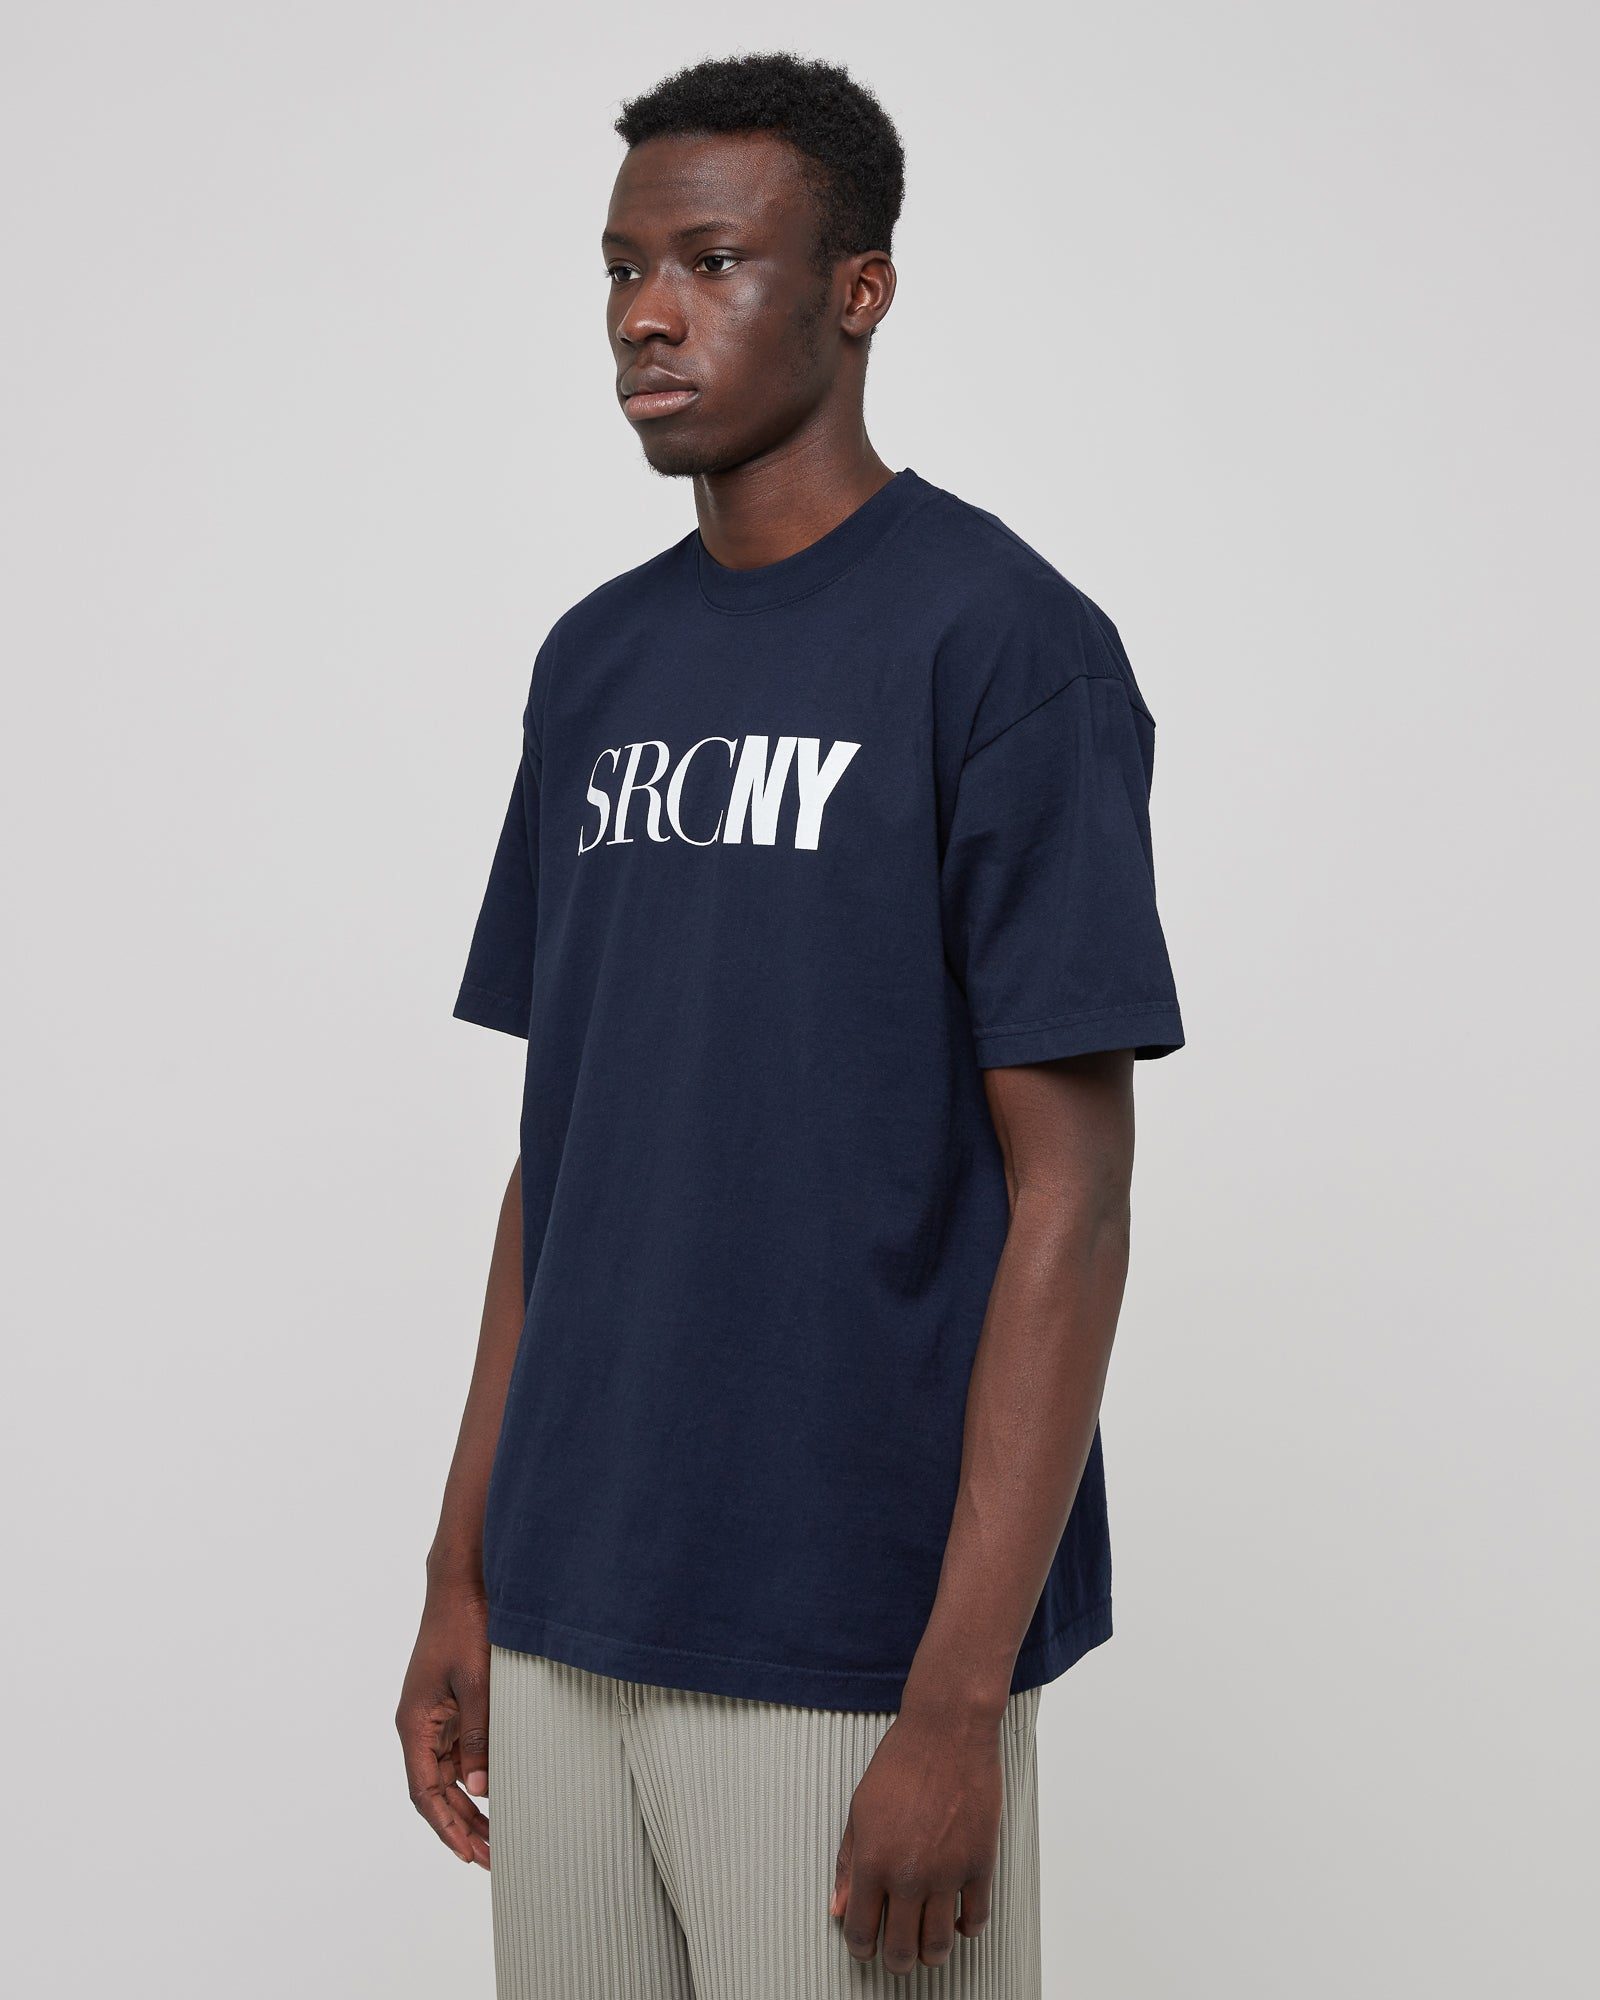 SRCNY T-Shirt in Navy